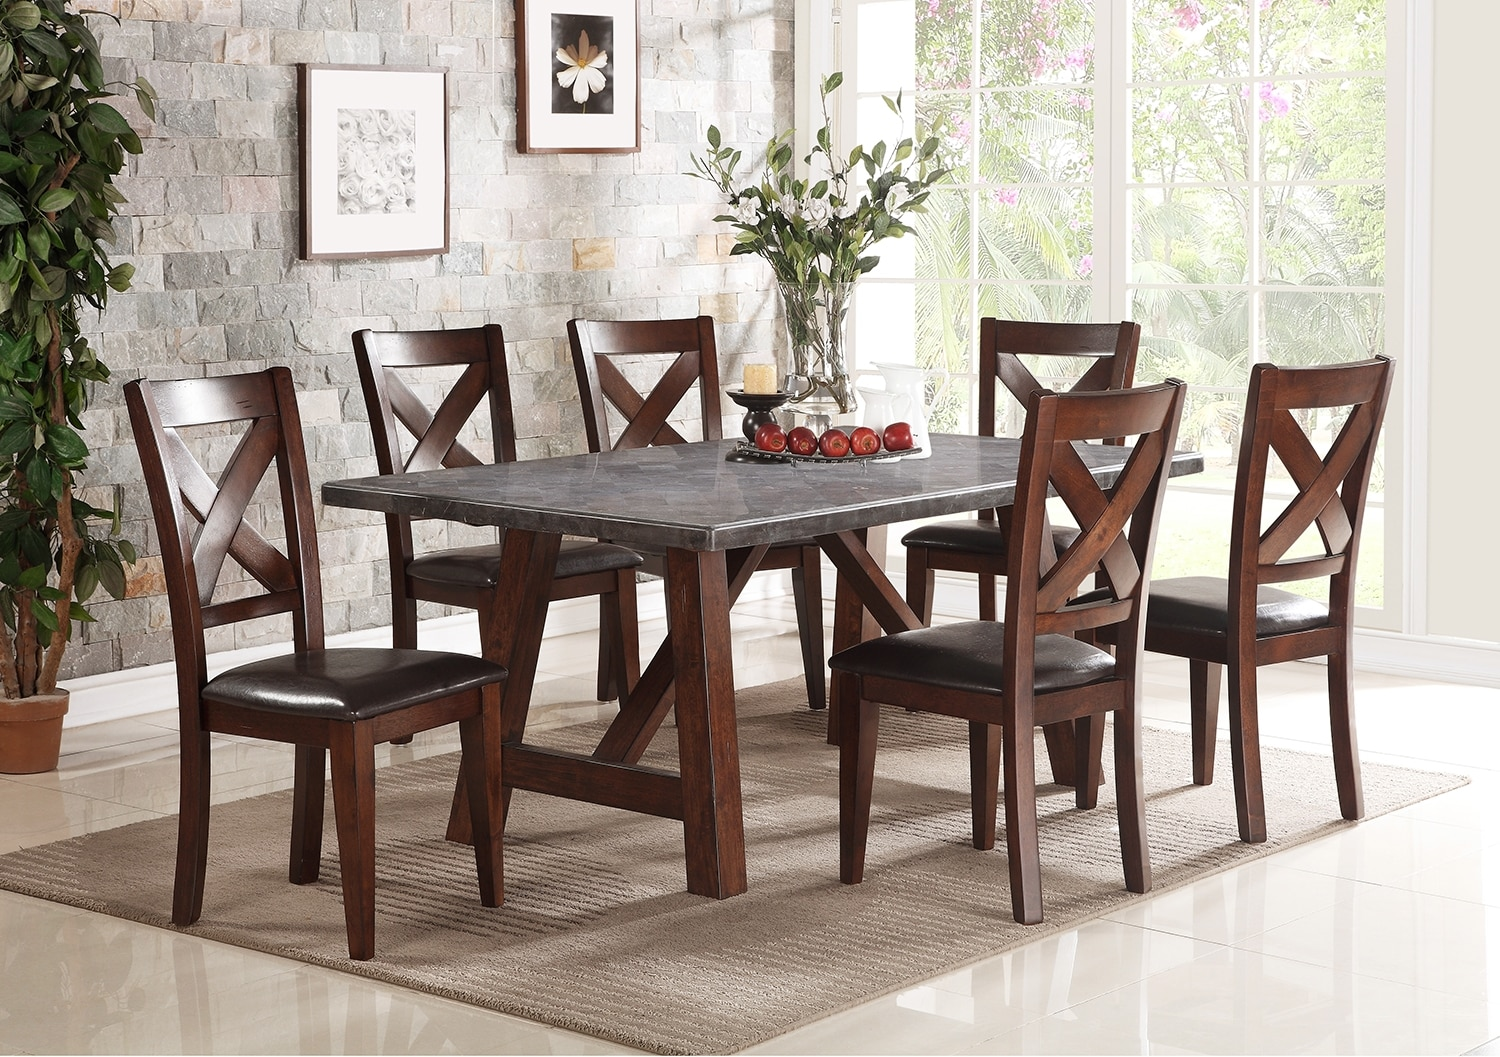 Dining Room Furniture - Bluestone 5-Piece Dining Package